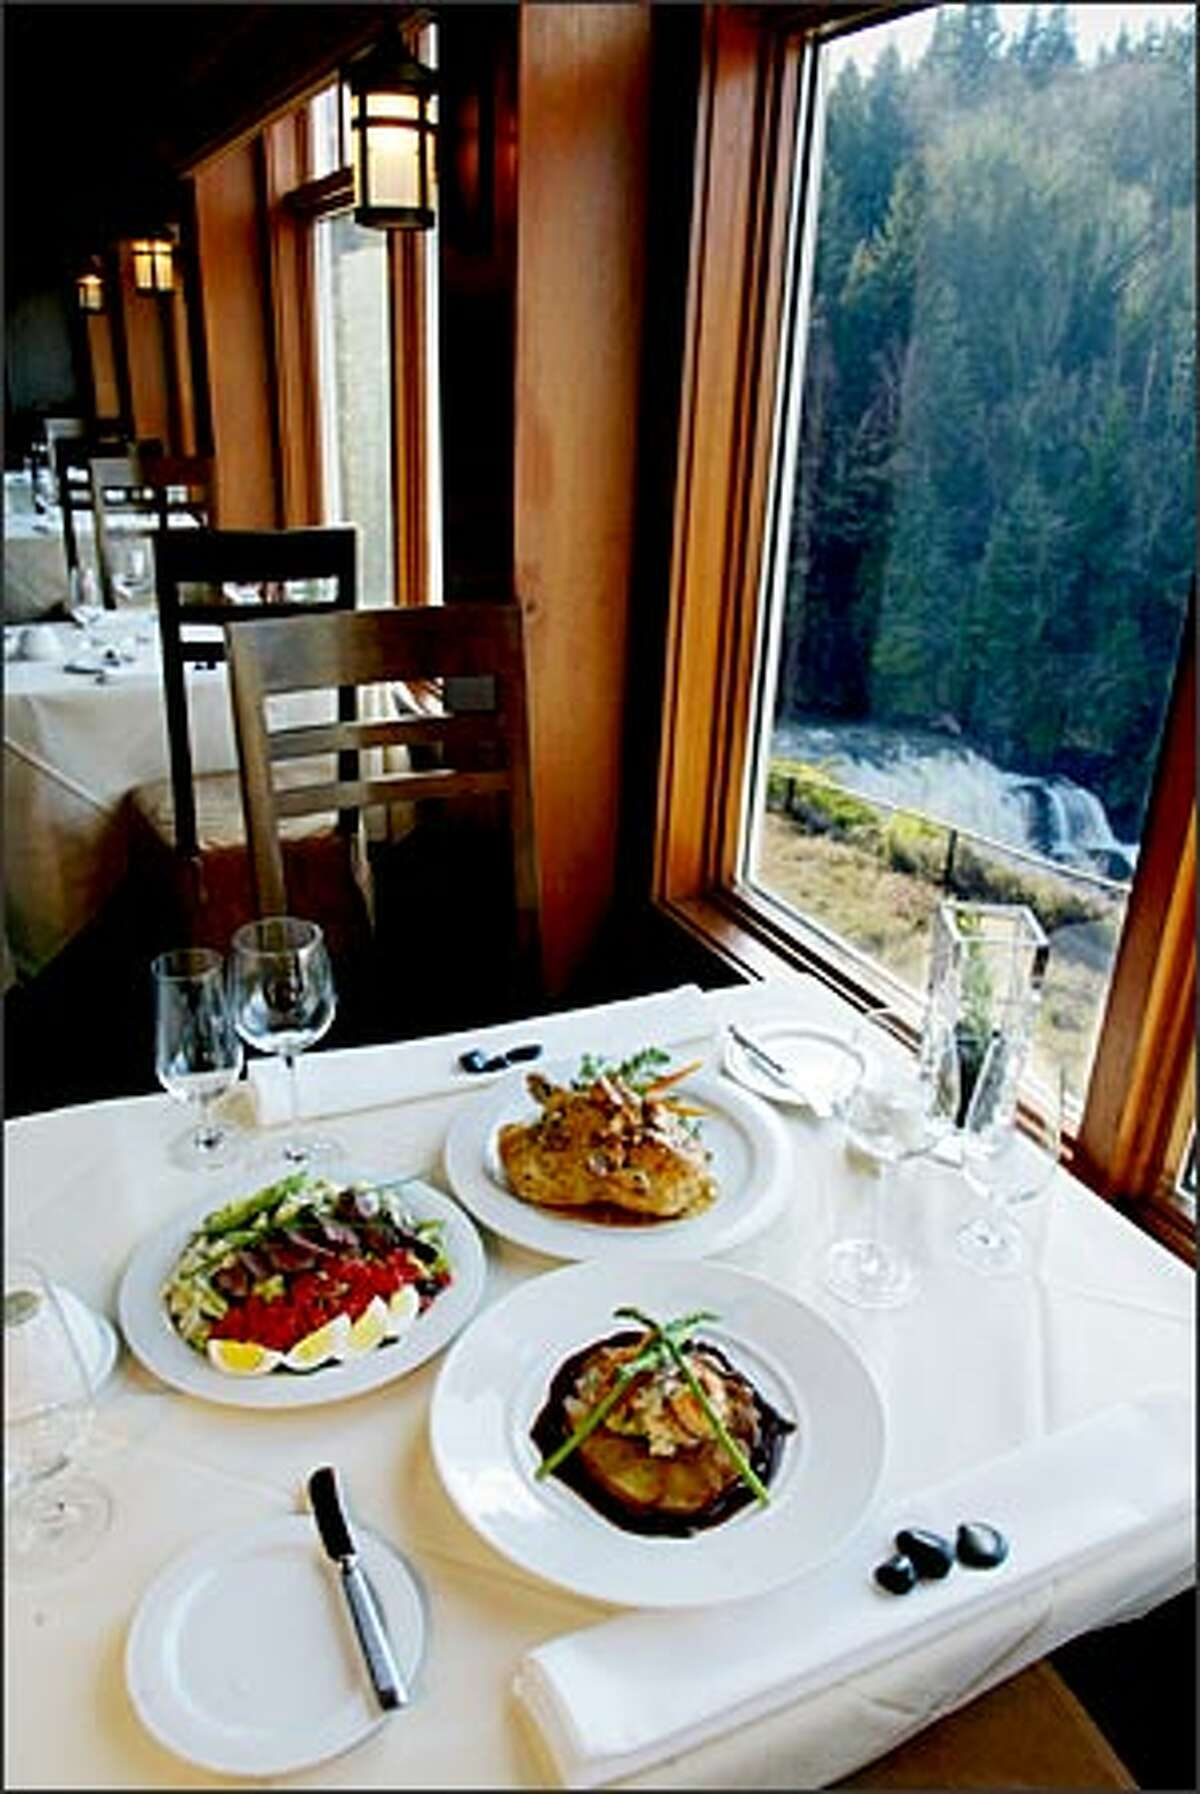 The main dining room at Salish Lodge and Spa offers great service and woodsy views.